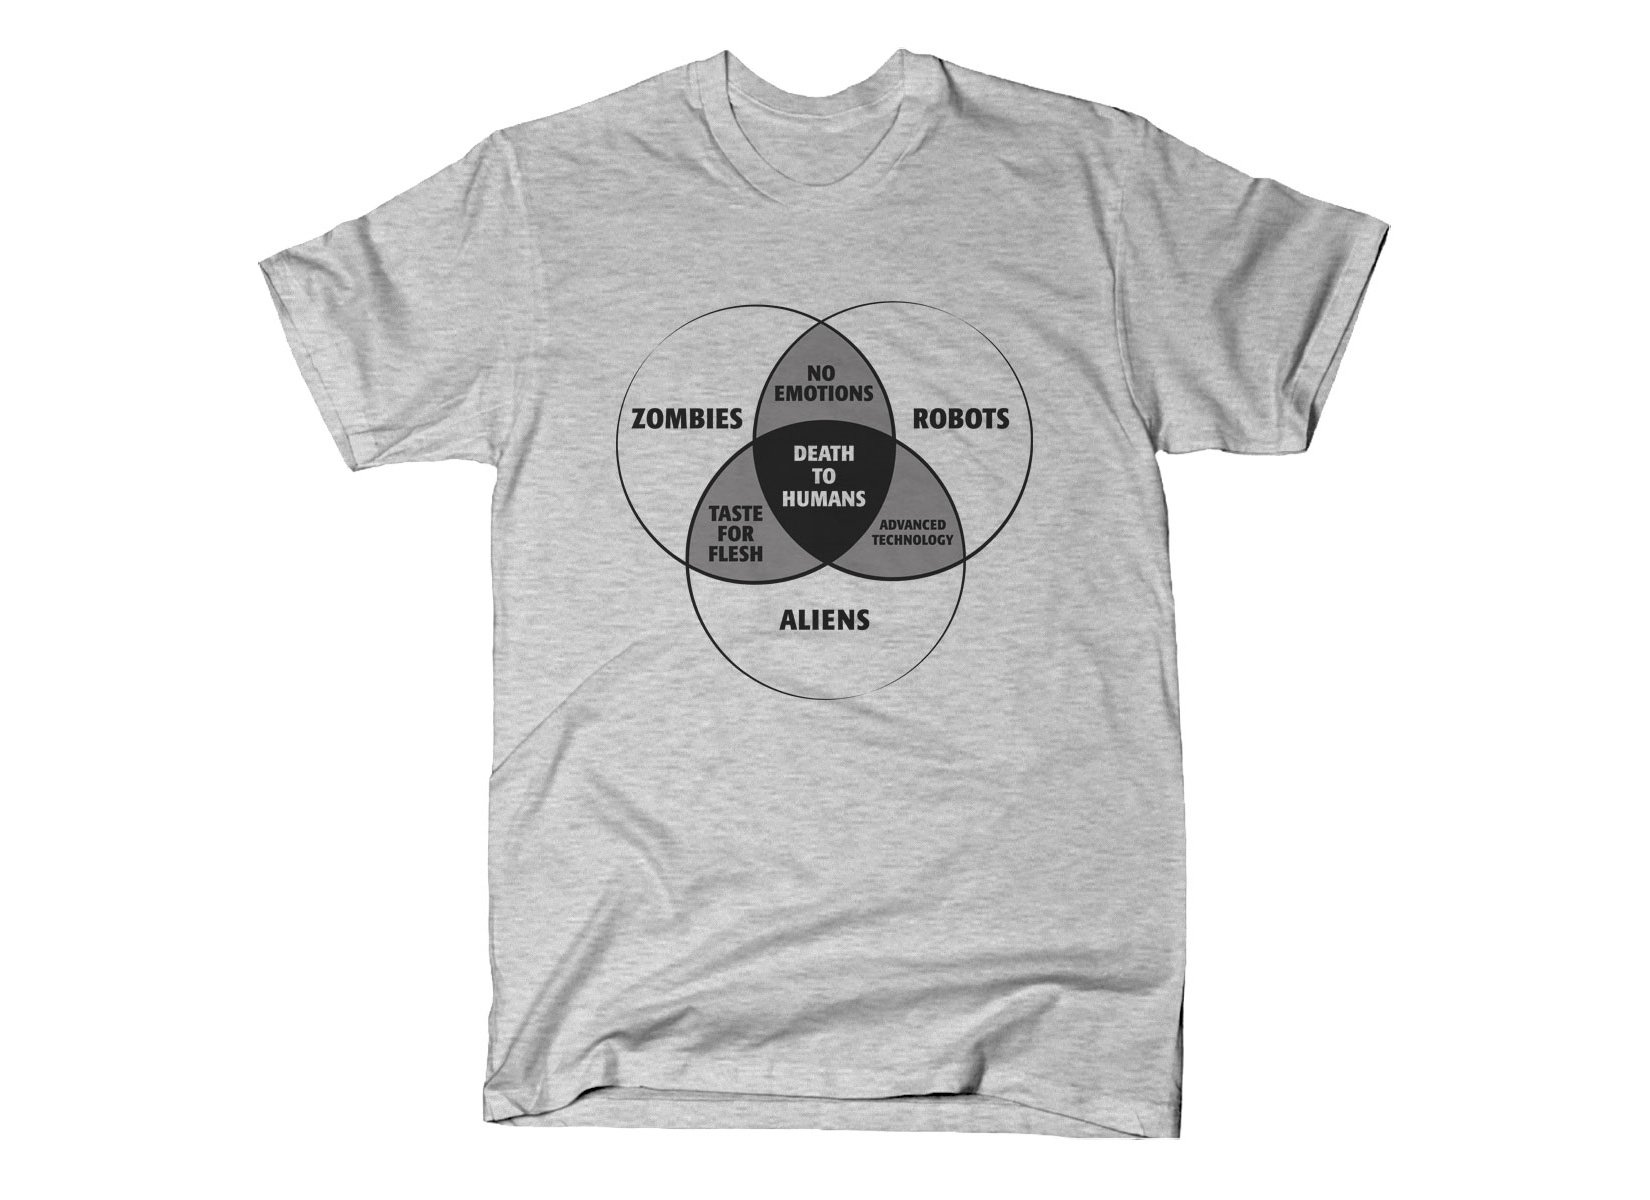 snorg_zombieveendiagram_1 zombies, robots, and aliens venn diagram t shirt snorgtees shirt diagram at gsmportal.co